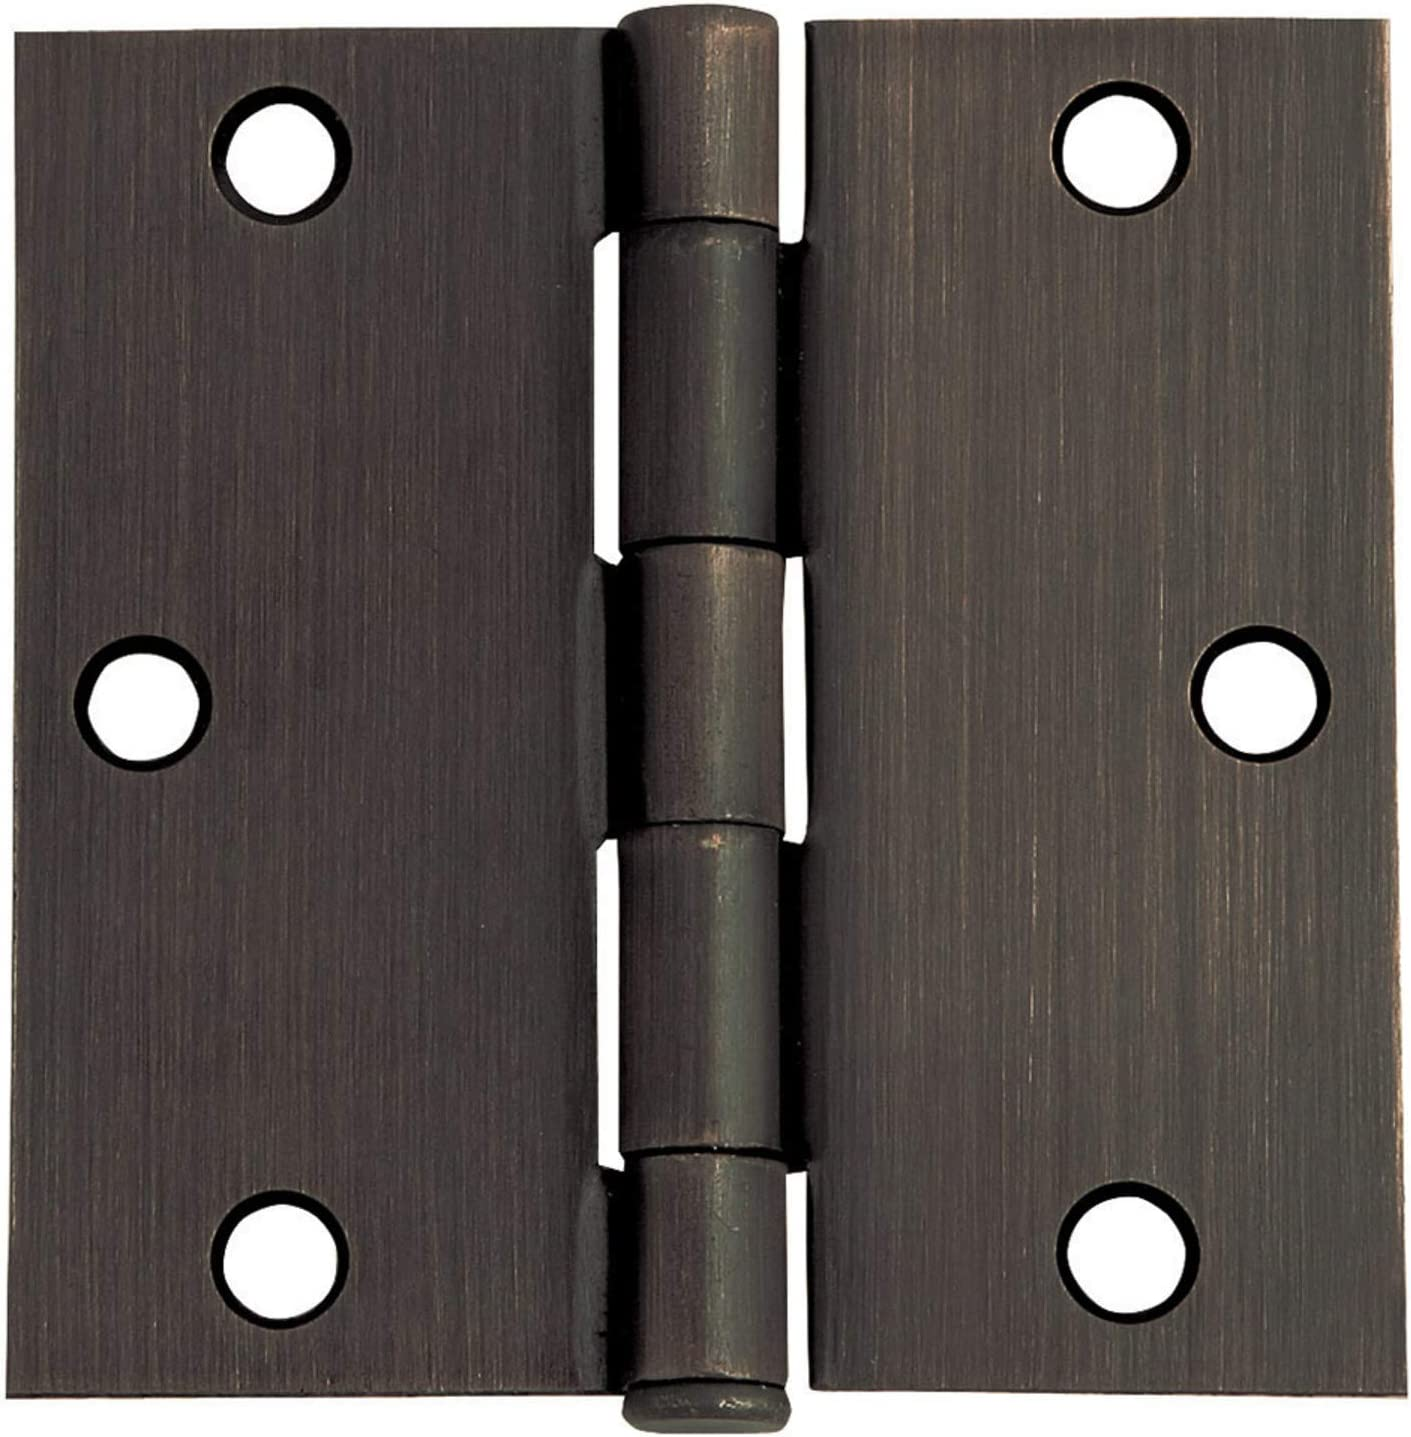 Square - 12 Pack, Black 3.5 x 3.5 Inch Interior Hinges Jhe Door Hinges Oil Rubbed Bronze